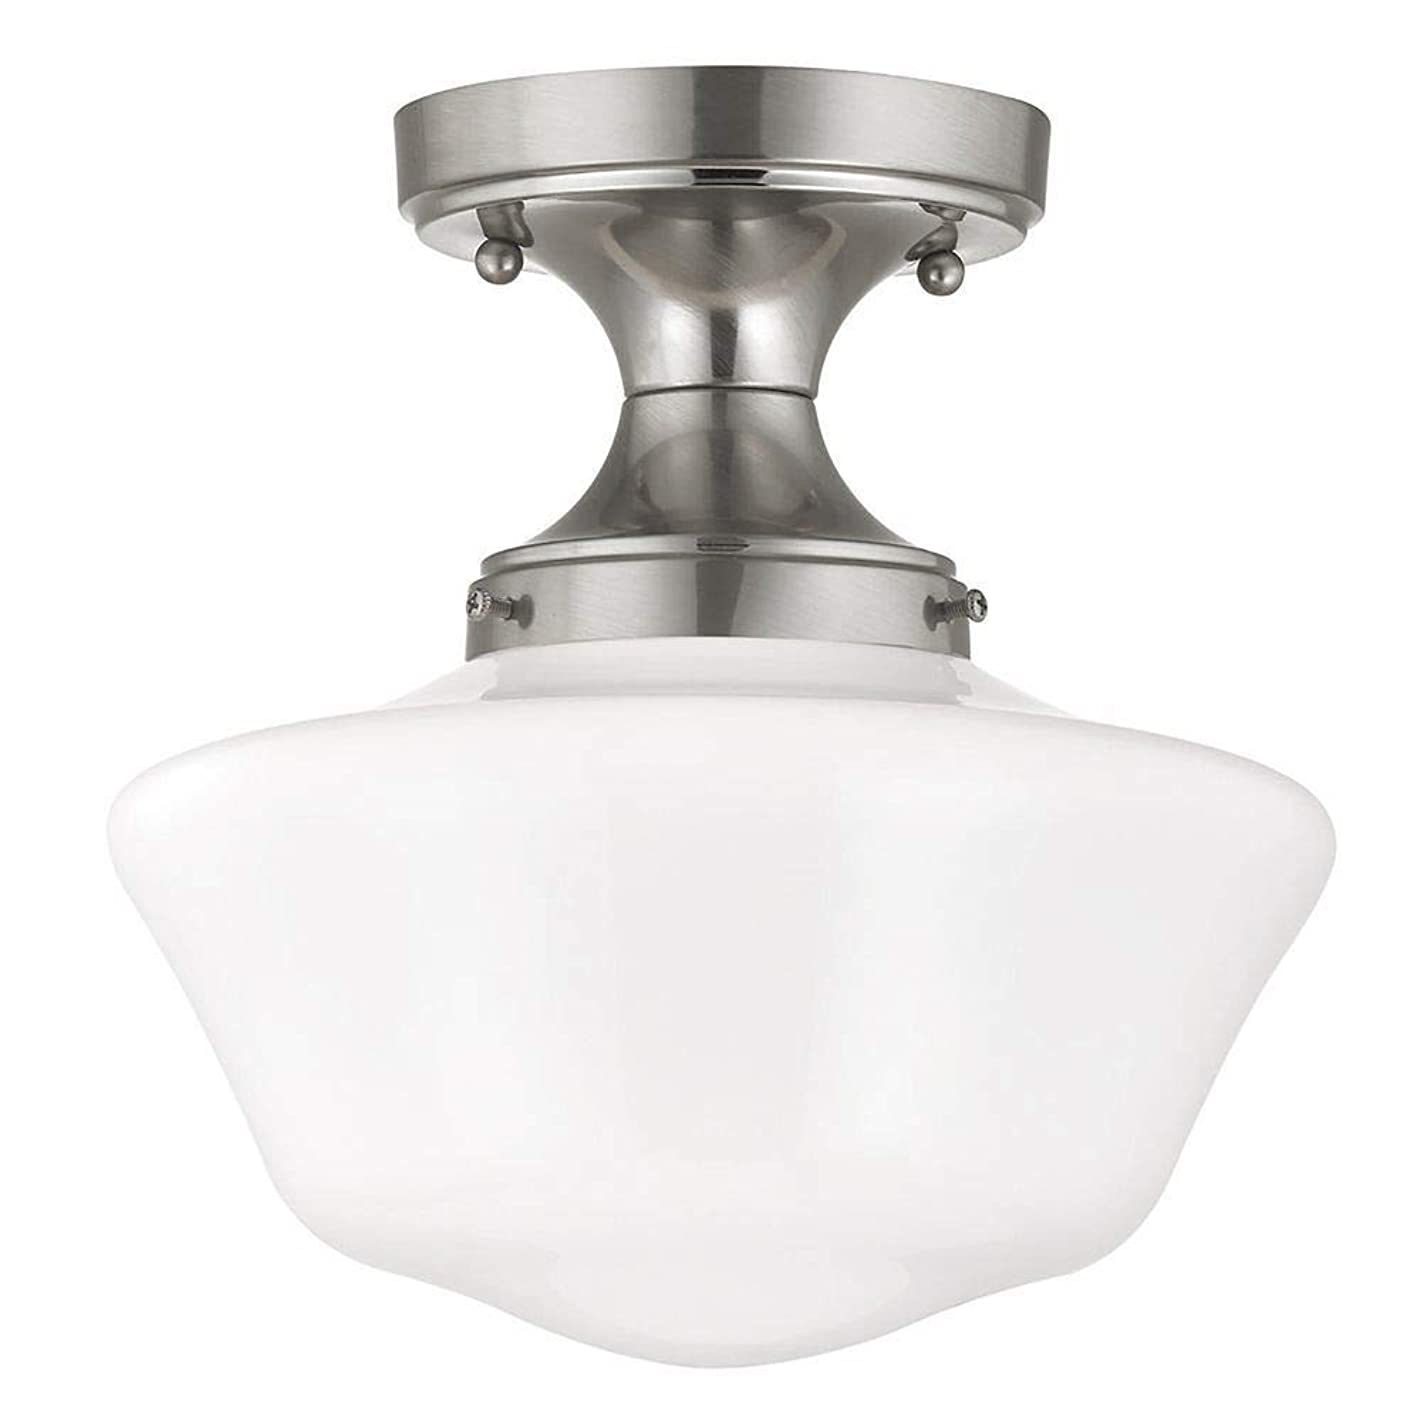 10-Inch Schoolhouse Ceiling Light in Satin Nickel Finish